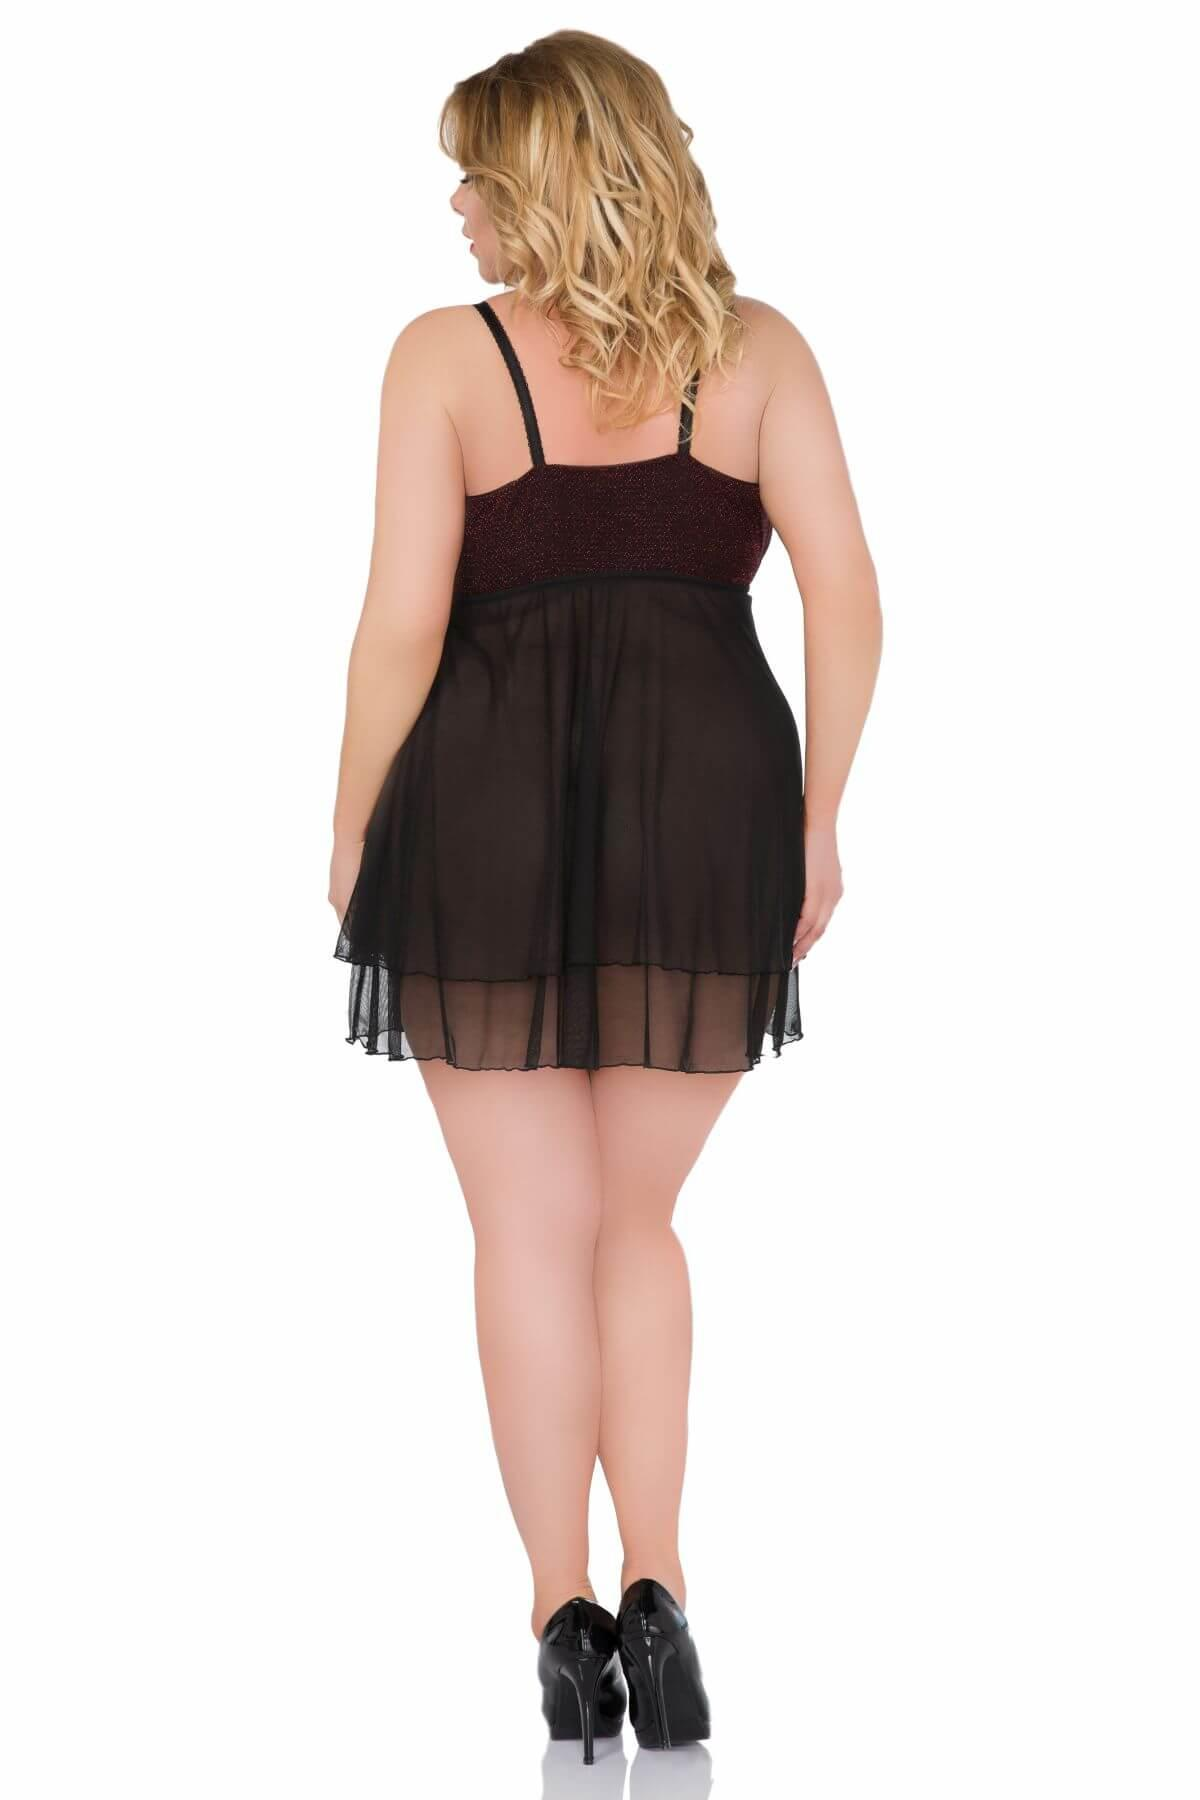 Sheer Black Plus Size Babydoll rear view